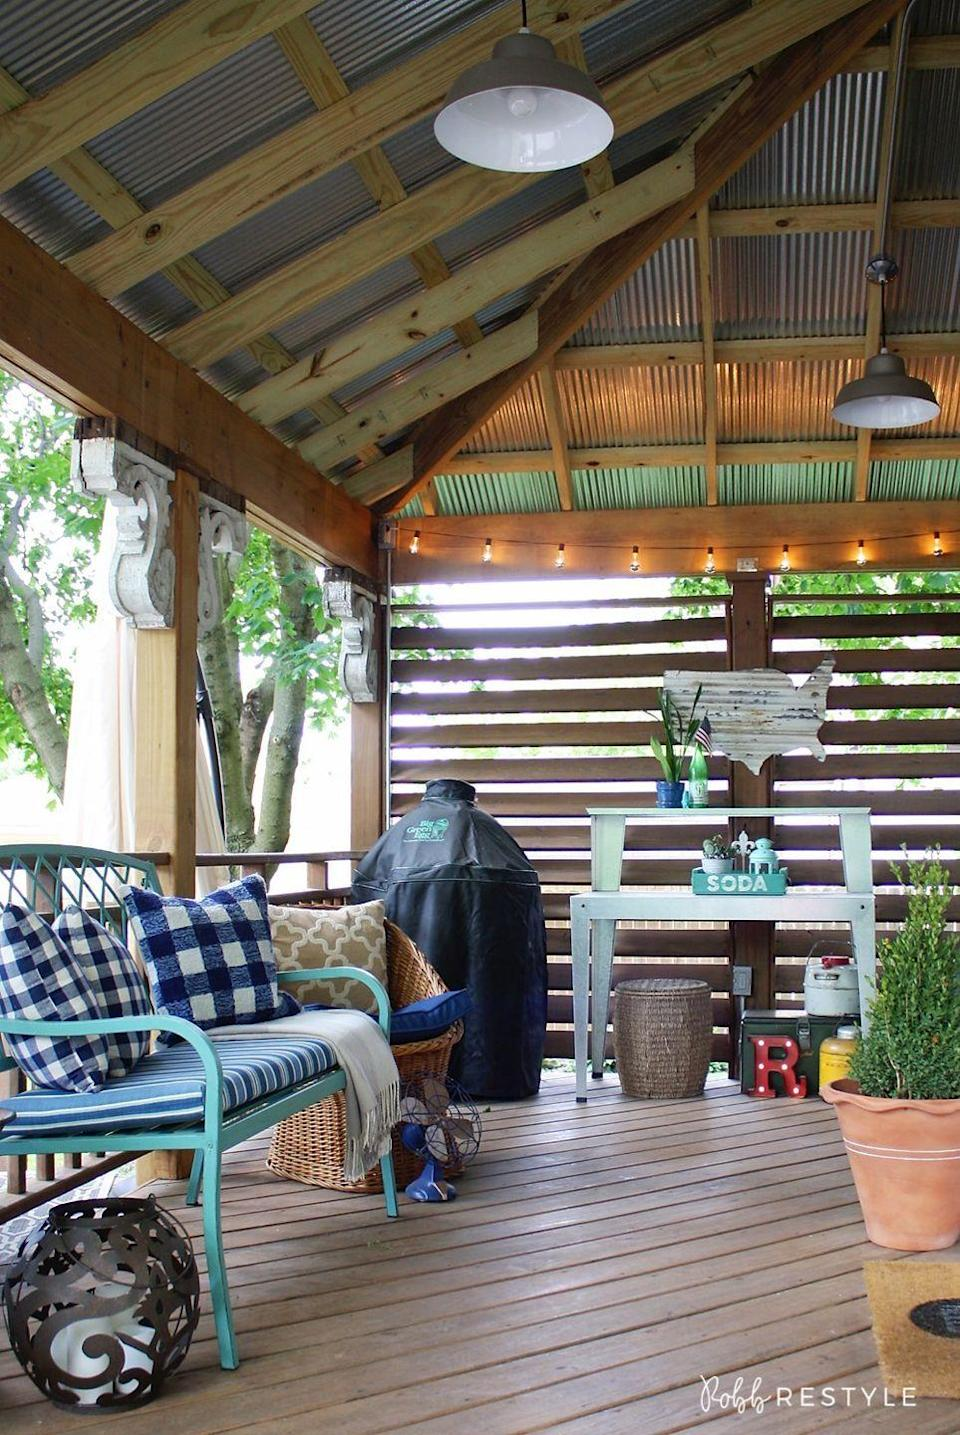 """<p>A streamlined strand will keep the area looking nice and clean. Then, you can decorate with all sorts of knick knacks.</p><p><strong>See more at <a href=""""https://robbrestyle.com/summer-backyard-tour/"""" rel=""""nofollow noopener"""" target=""""_blank"""" data-ylk=""""slk:Robb Restyle"""" class=""""link rapid-noclick-resp"""">Robb Restyle</a>.</strong></p><p><strong><a class=""""link rapid-noclick-resp"""" href=""""https://www.amazon.com/Outdoor-Commercial-Perfect-Backyard-Umbrella/dp/B07B61XR58?tag=syn-yahoo-20&ascsubtag=%5Bartid%7C10050.g.3404%5Bsrc%7Cyahoo-us"""" rel=""""nofollow noopener"""" target=""""_blank"""" data-ylk=""""slk:SHOP STRING LIGHTS"""">SHOP STRING LIGHTS</a><br></strong></p>"""